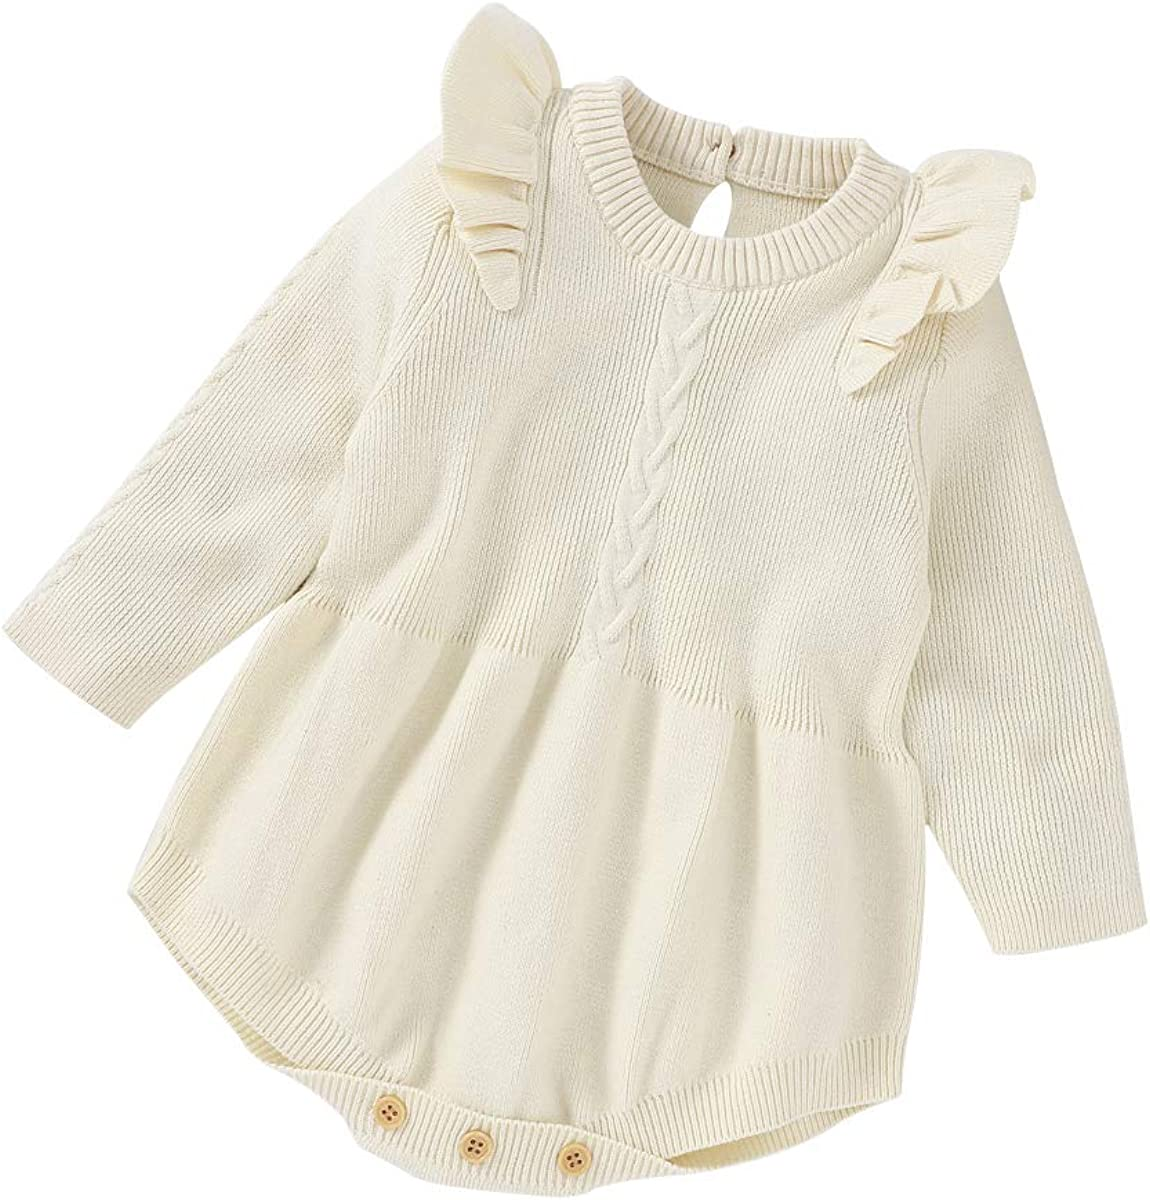 Ambabe Newborn Baby Girl Fall Winter Clothes Ruffled Long Sleeve Solid Color Knitted Romper Sweater Jumpsuit One-Piece Outfit